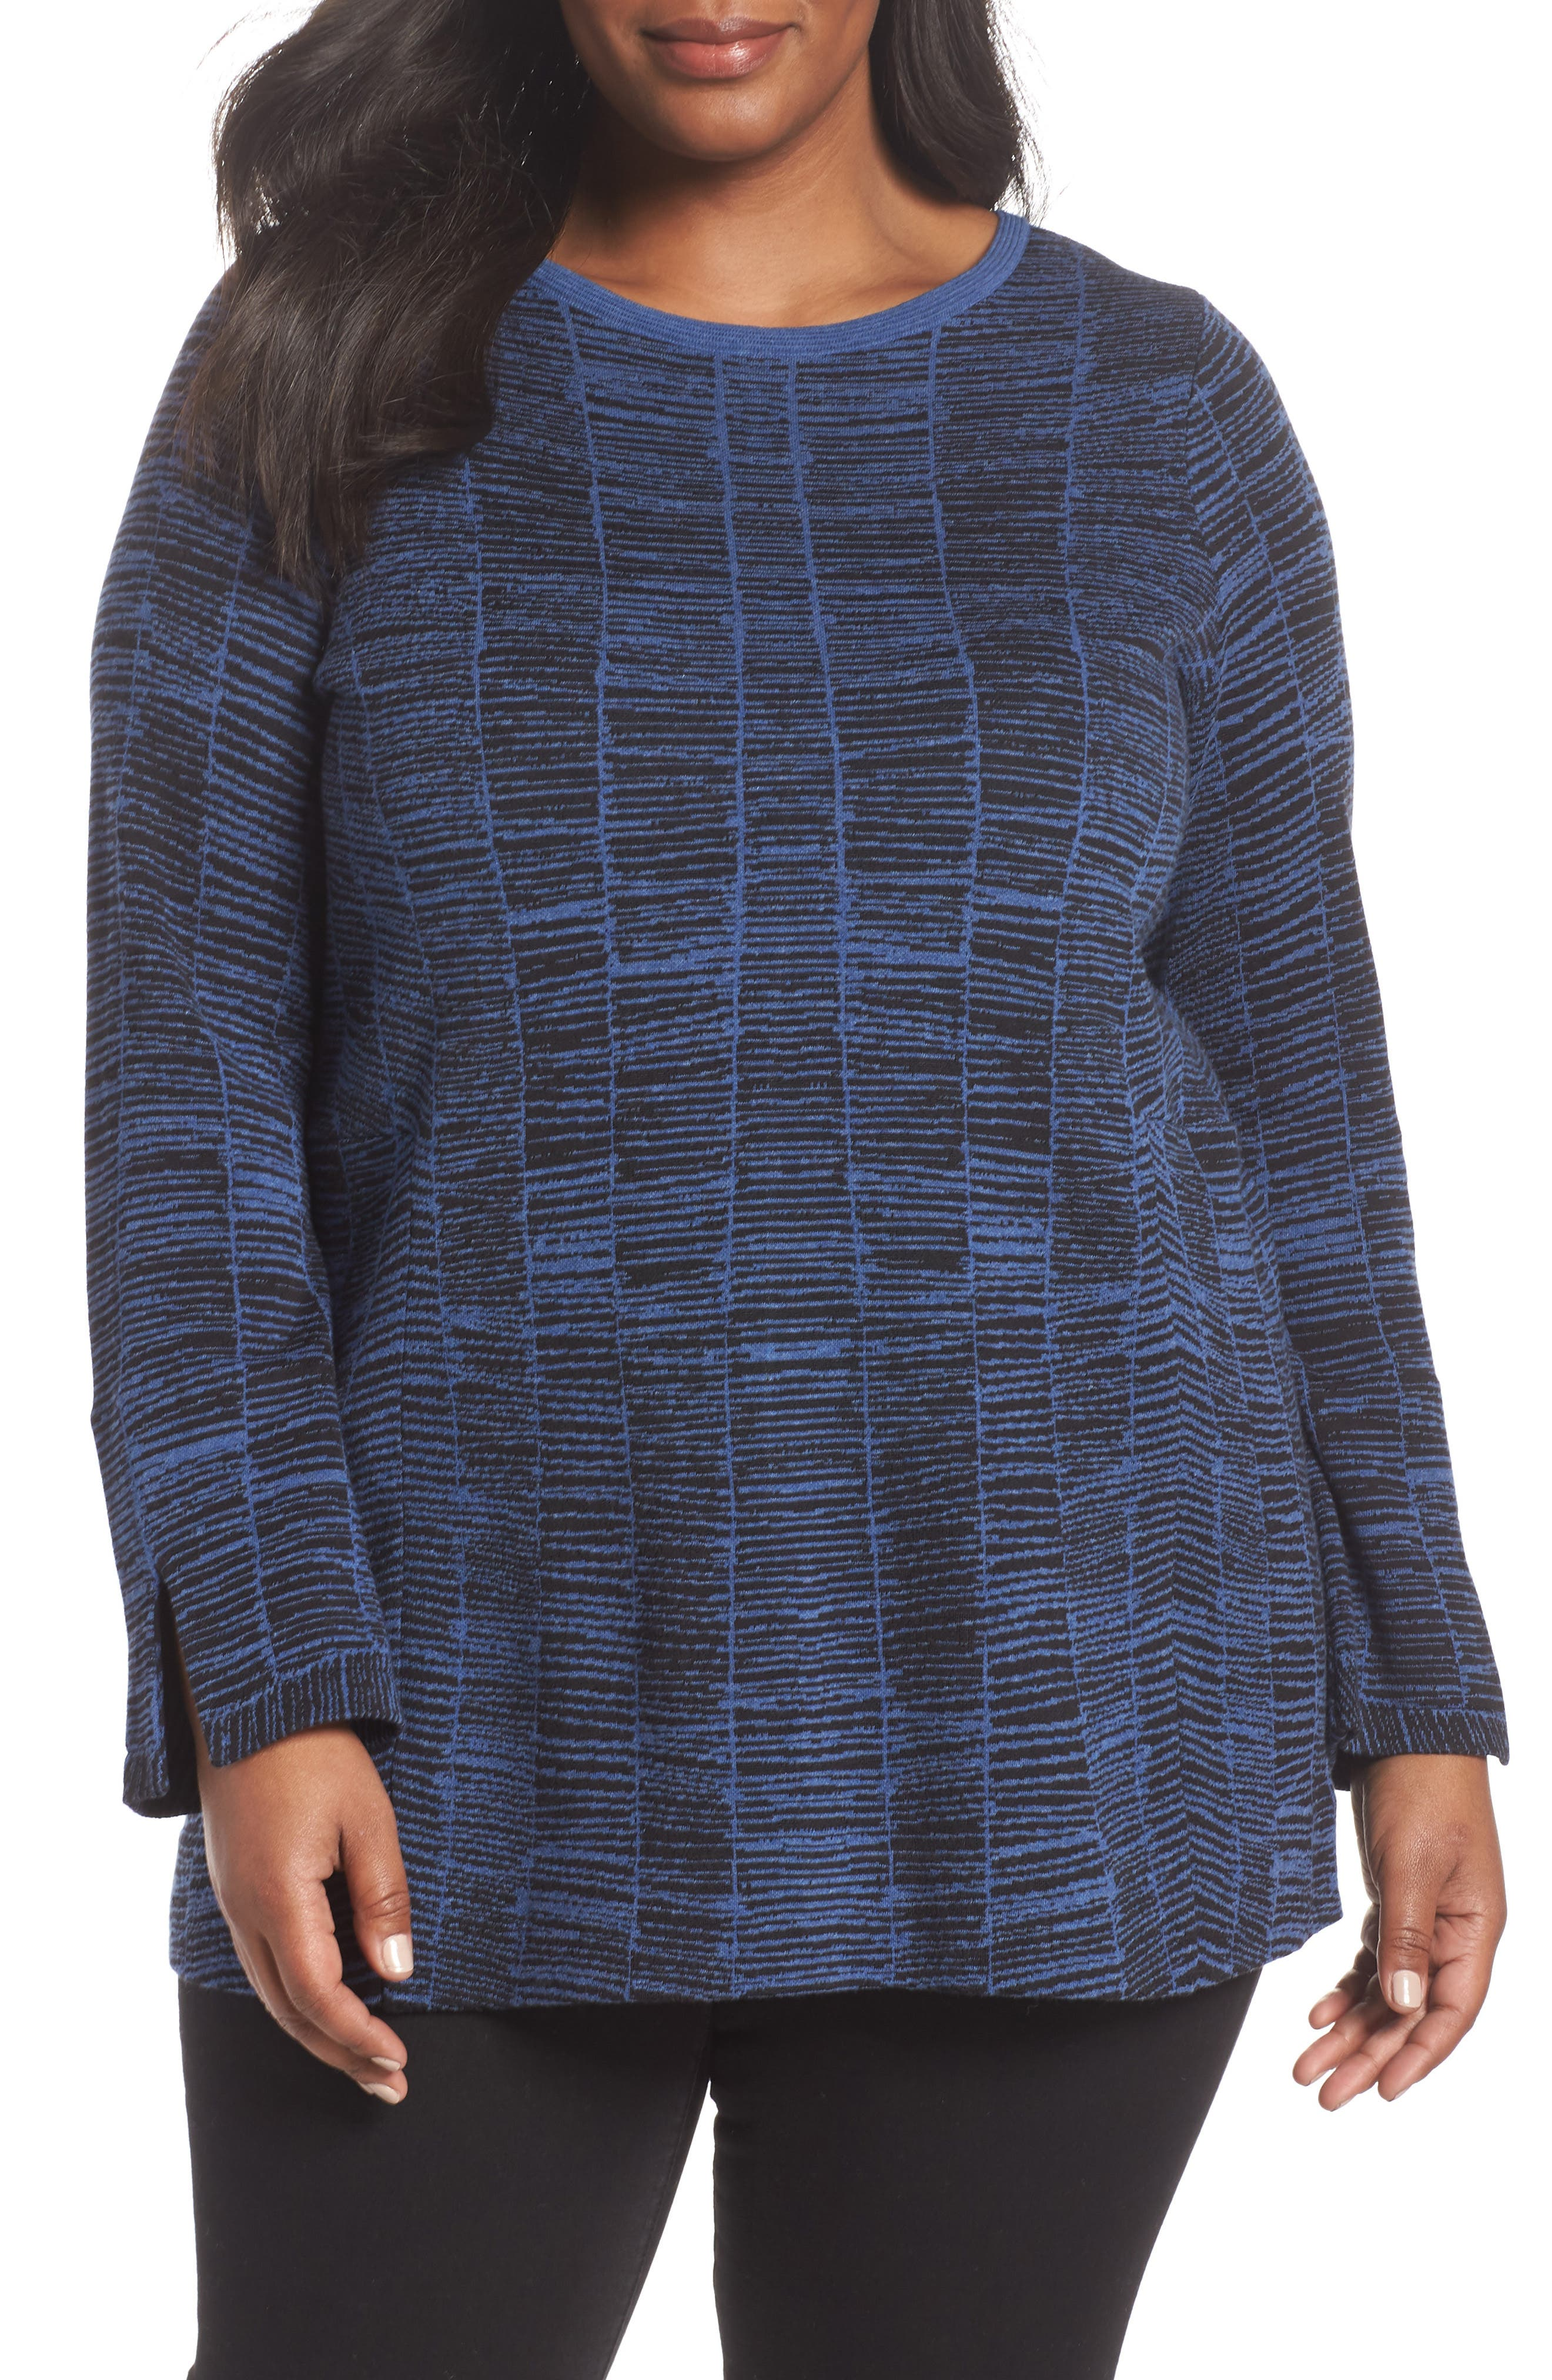 Symmetry Tunic Top,                             Main thumbnail 1, color,                             499